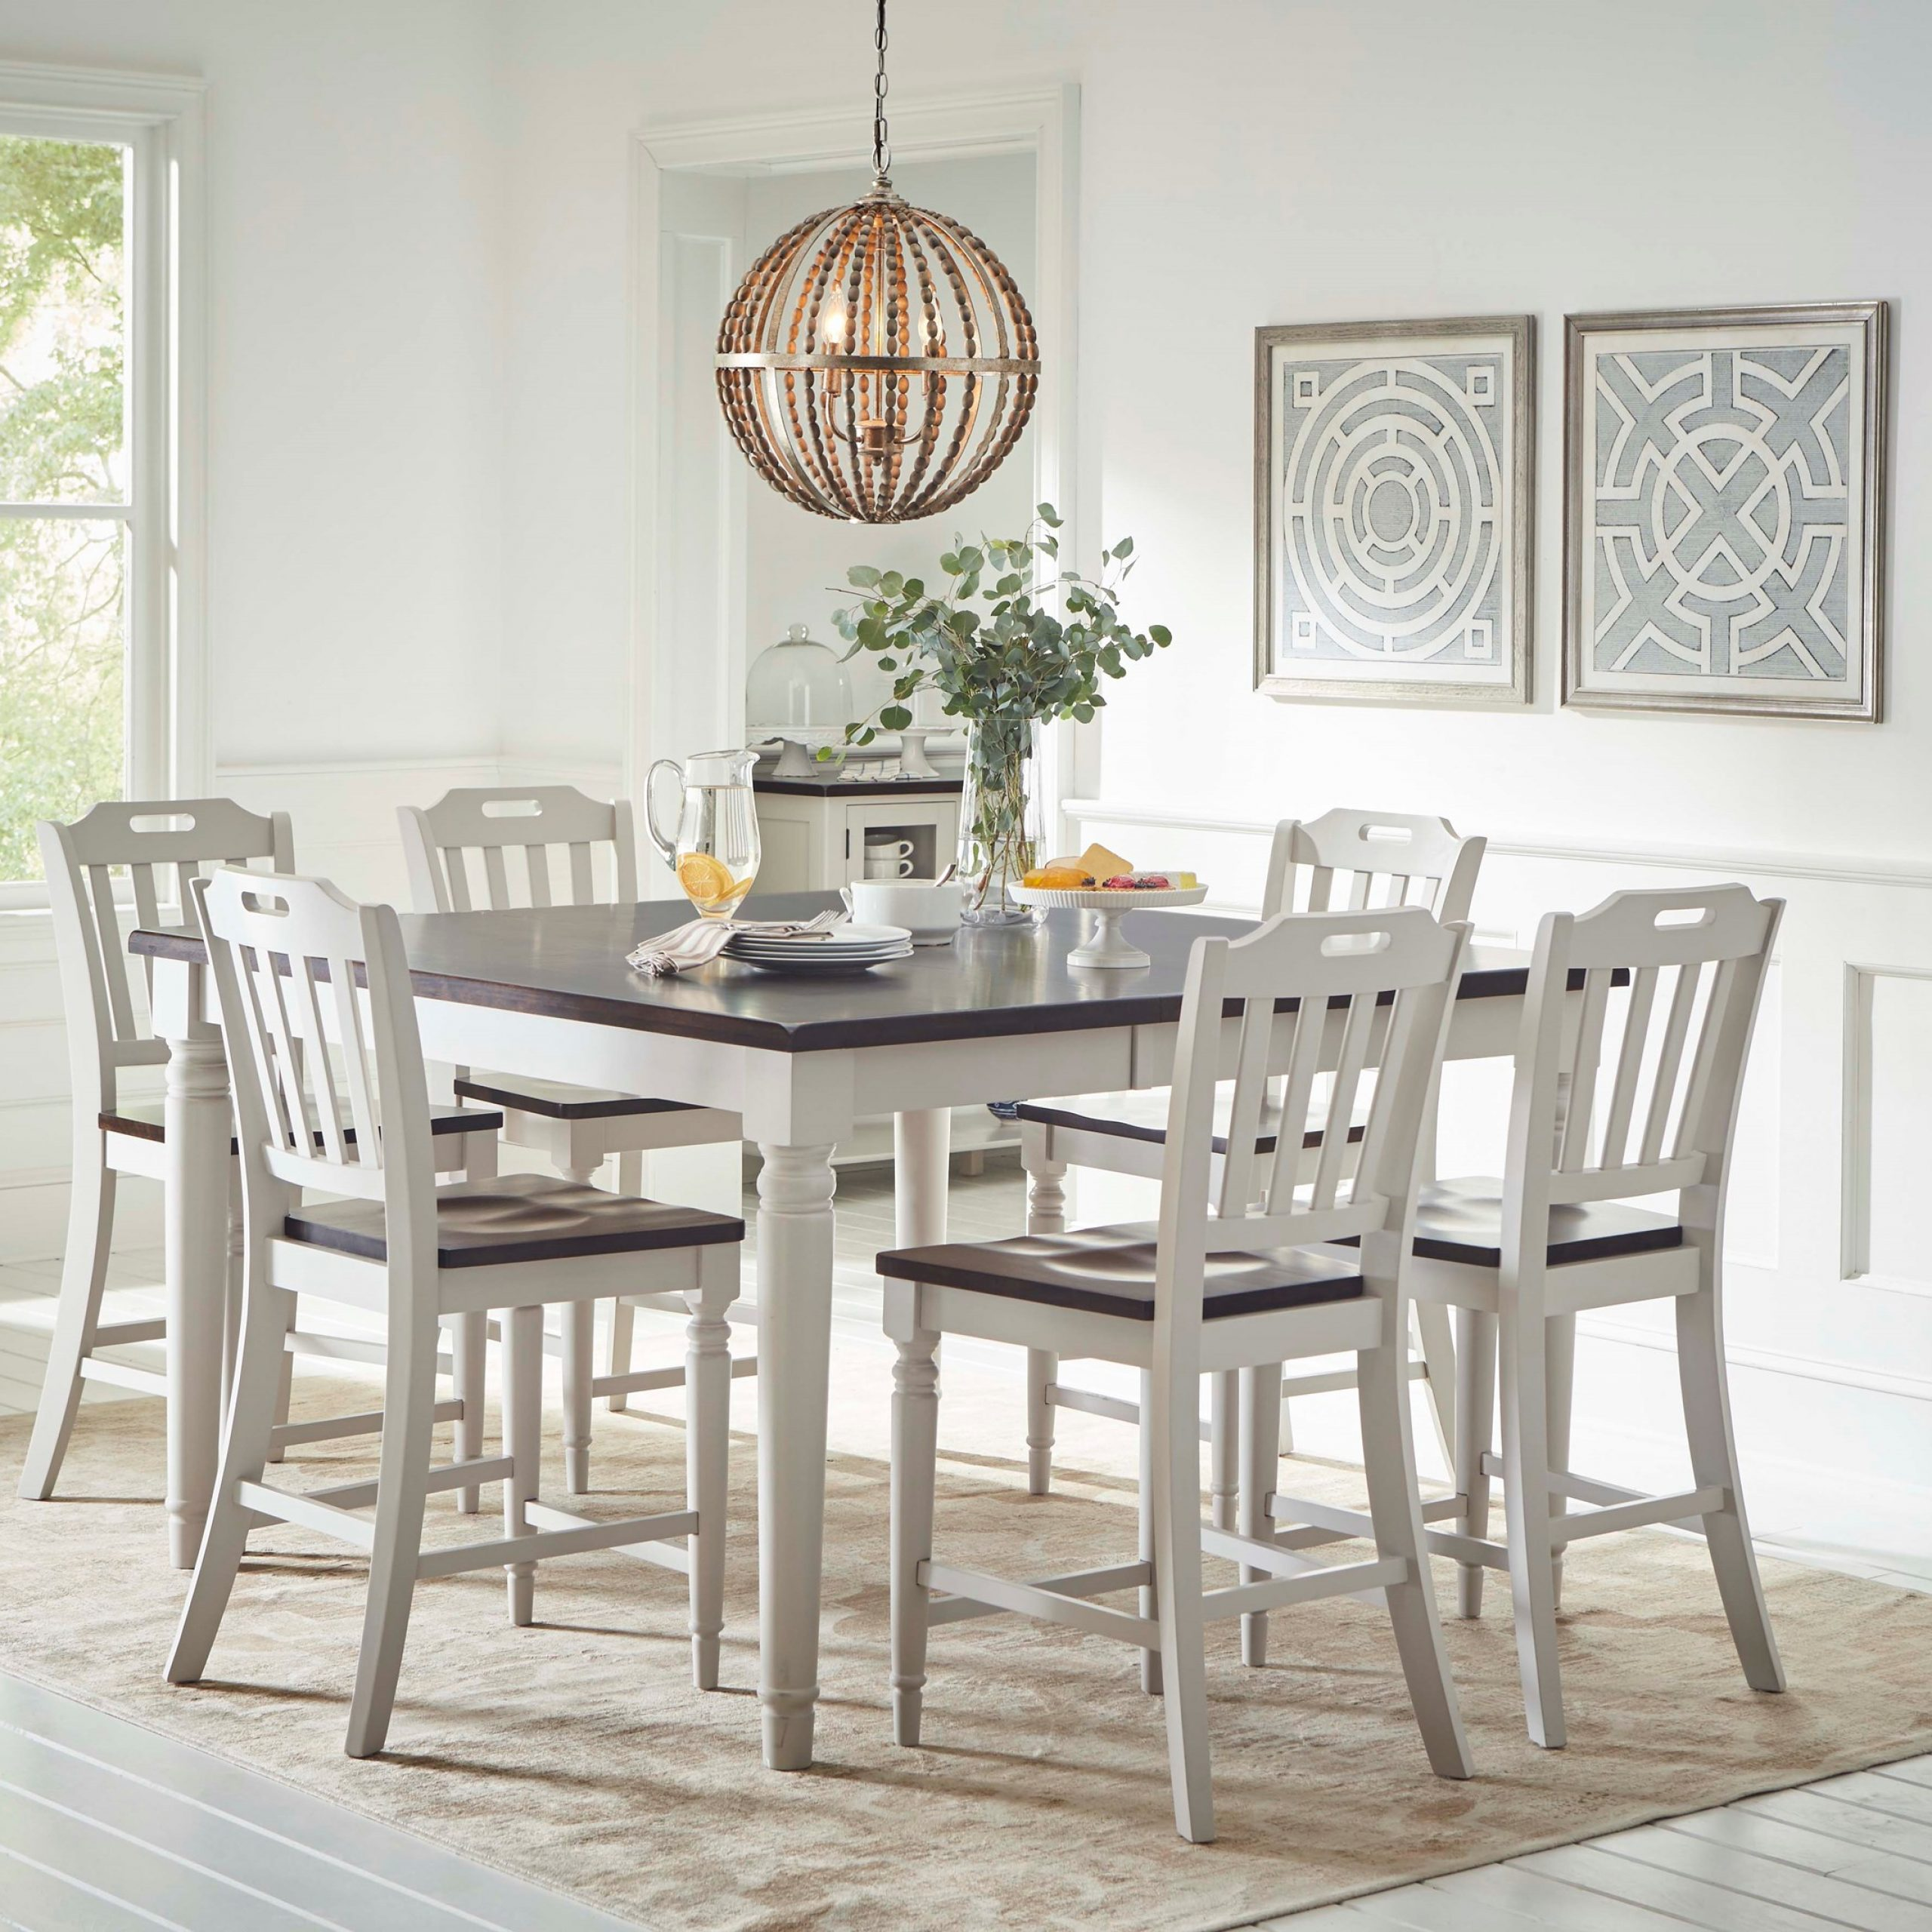 Jofran Orchard Park Counter Height Dining Table With 8 In Most Popular Carson Counter Height Tables (View 22 of 25)